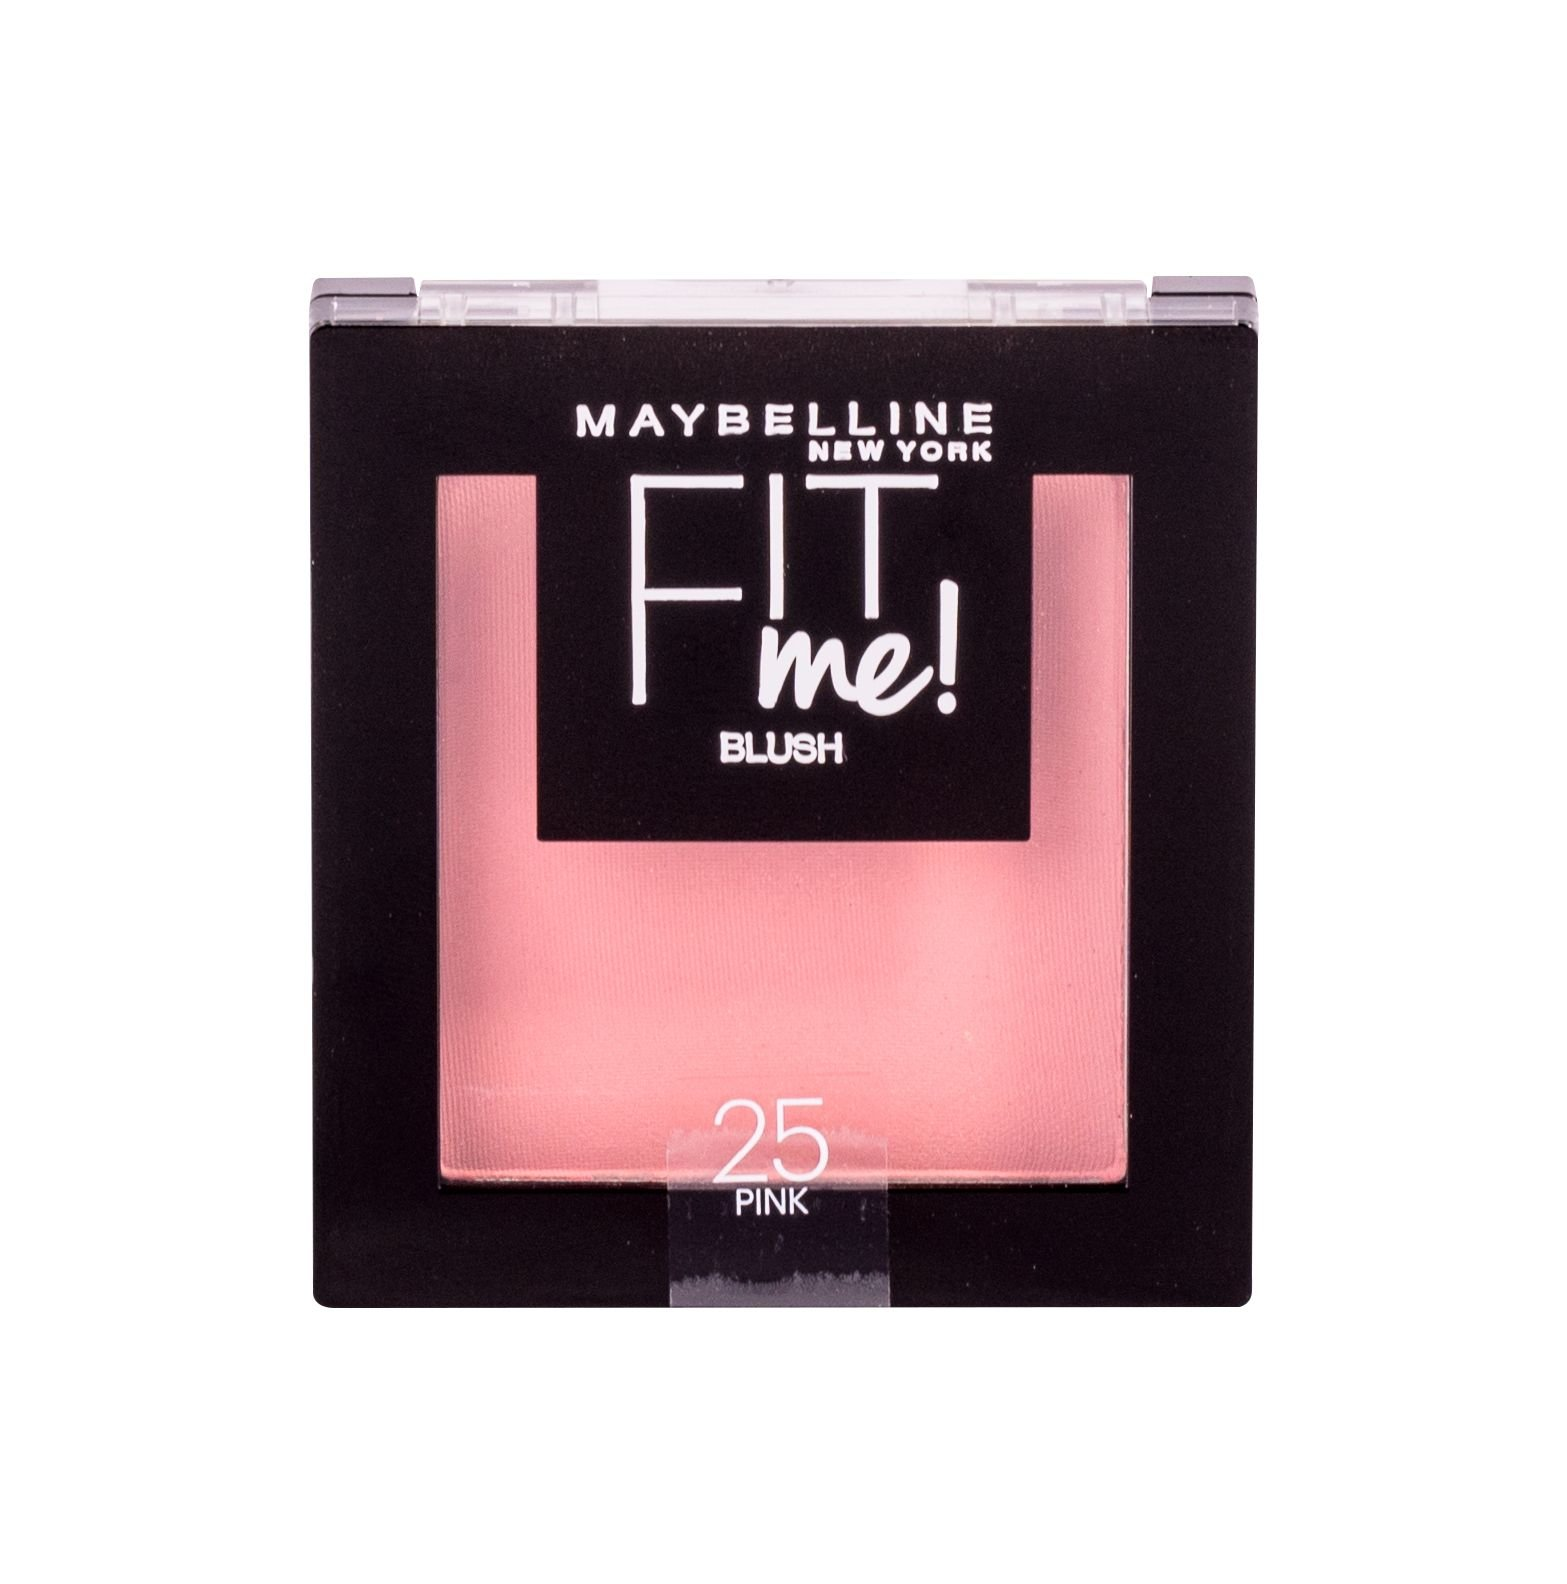 Maybelline Fit Me! Blush 5ml 25 Pink